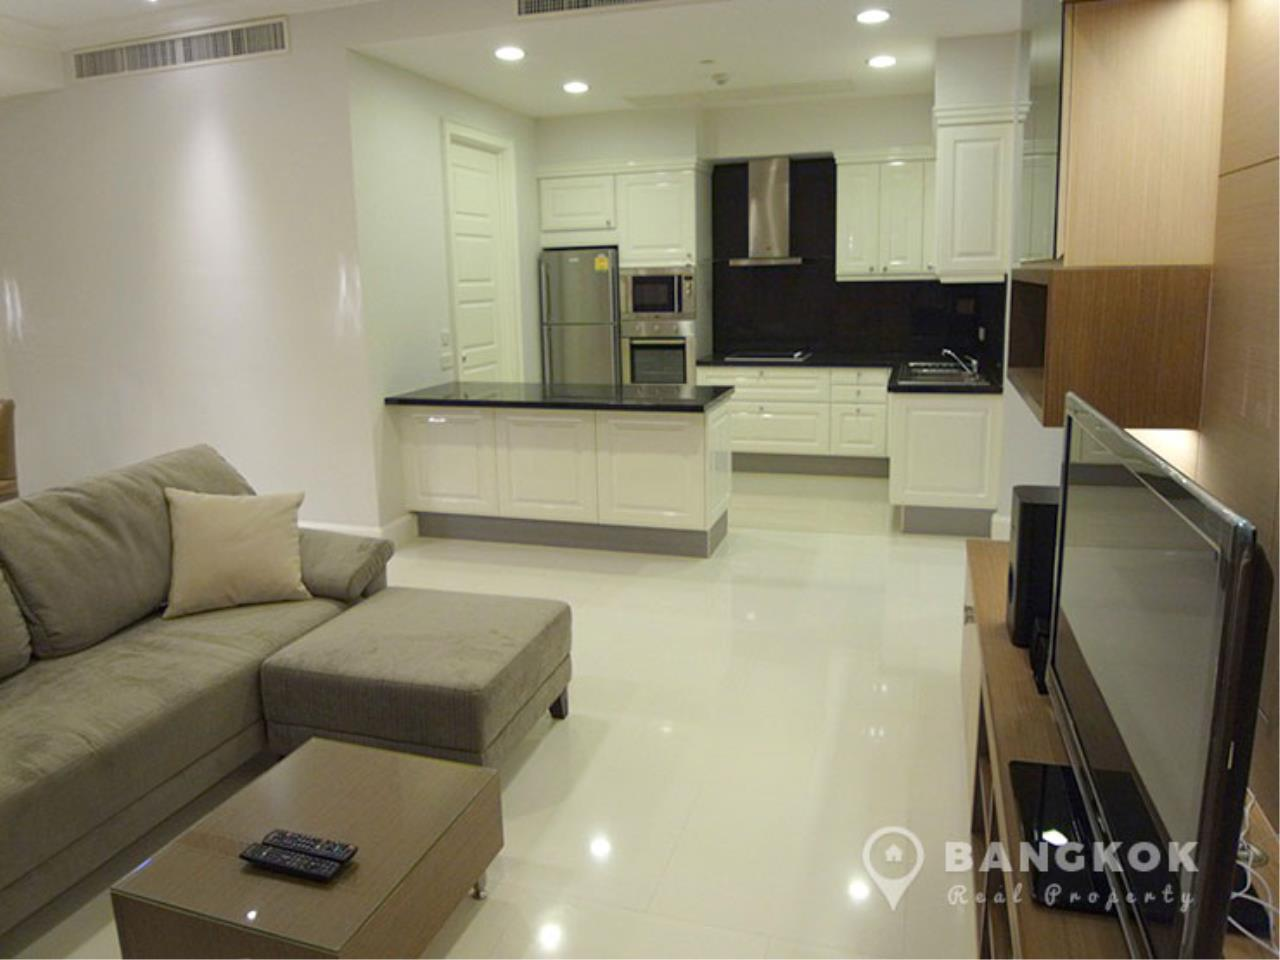 Bangkok Real Property Agency's Royce Private Residences | Luxury Modern 3 Bed Condo in Sukhumvit 5